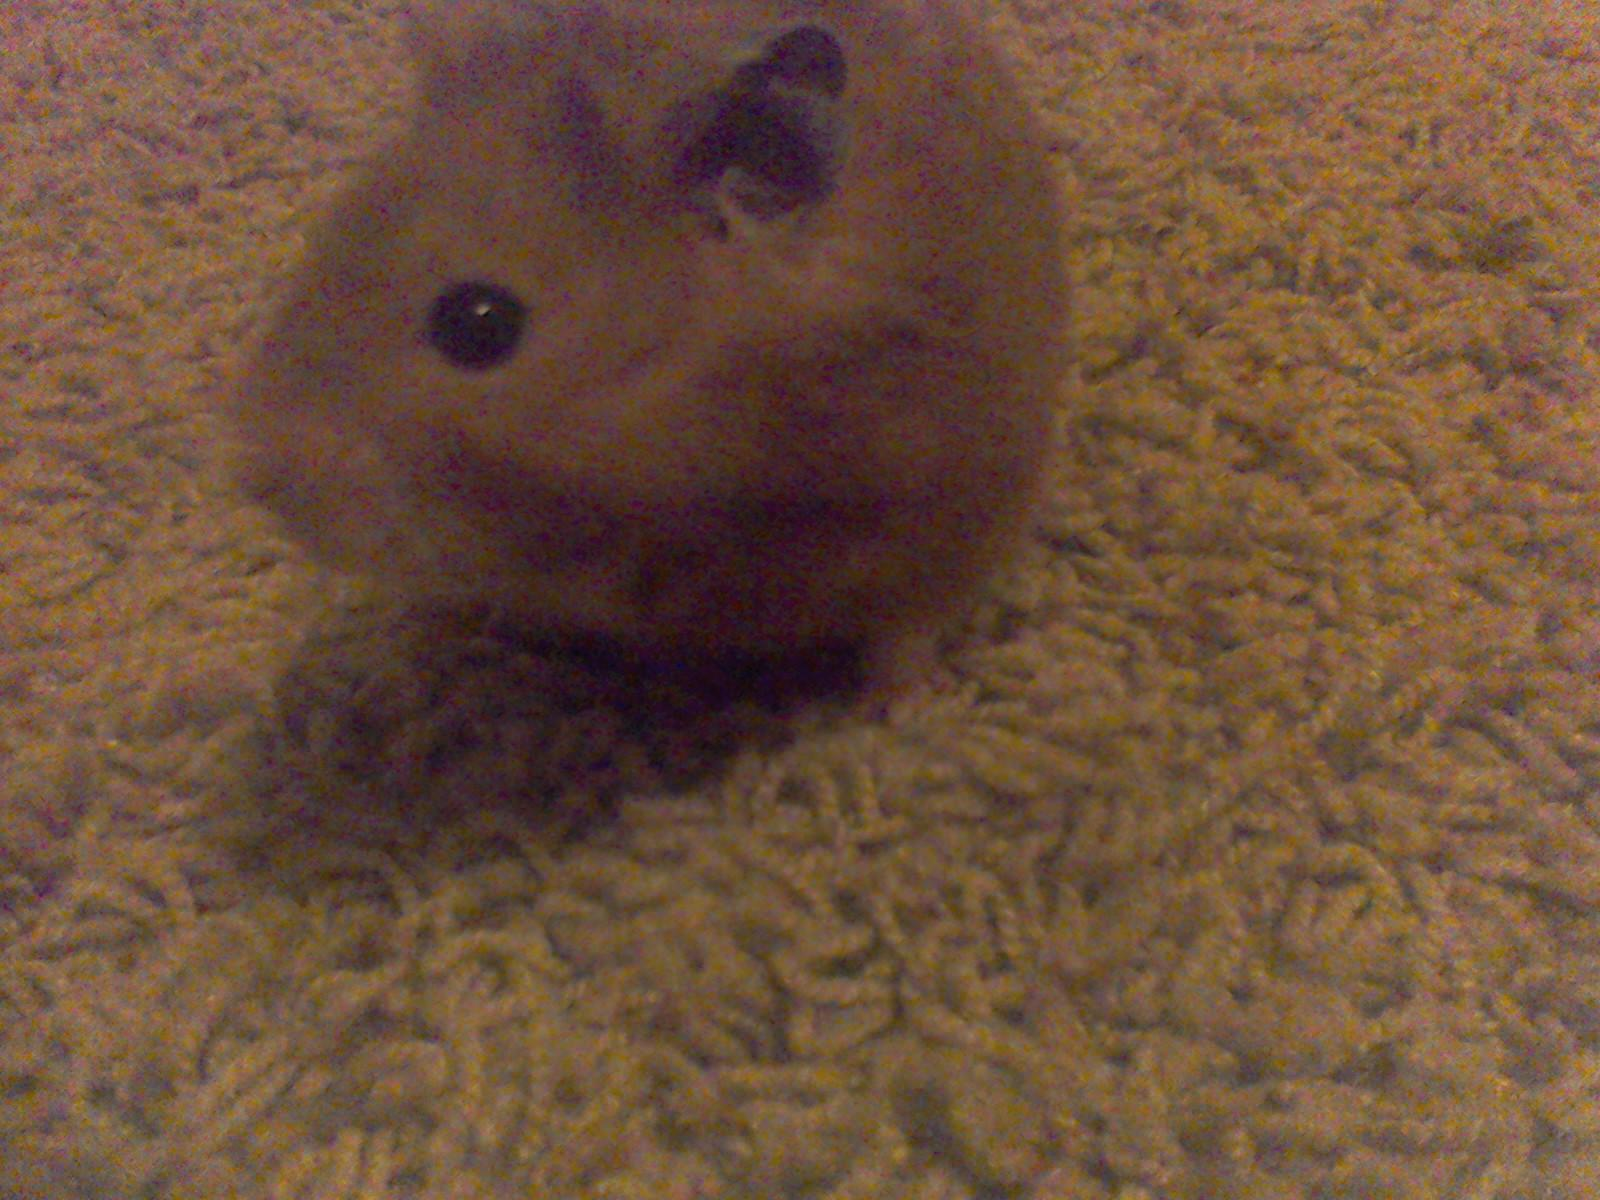 Do you like my hamster? (his name is Cocoa)